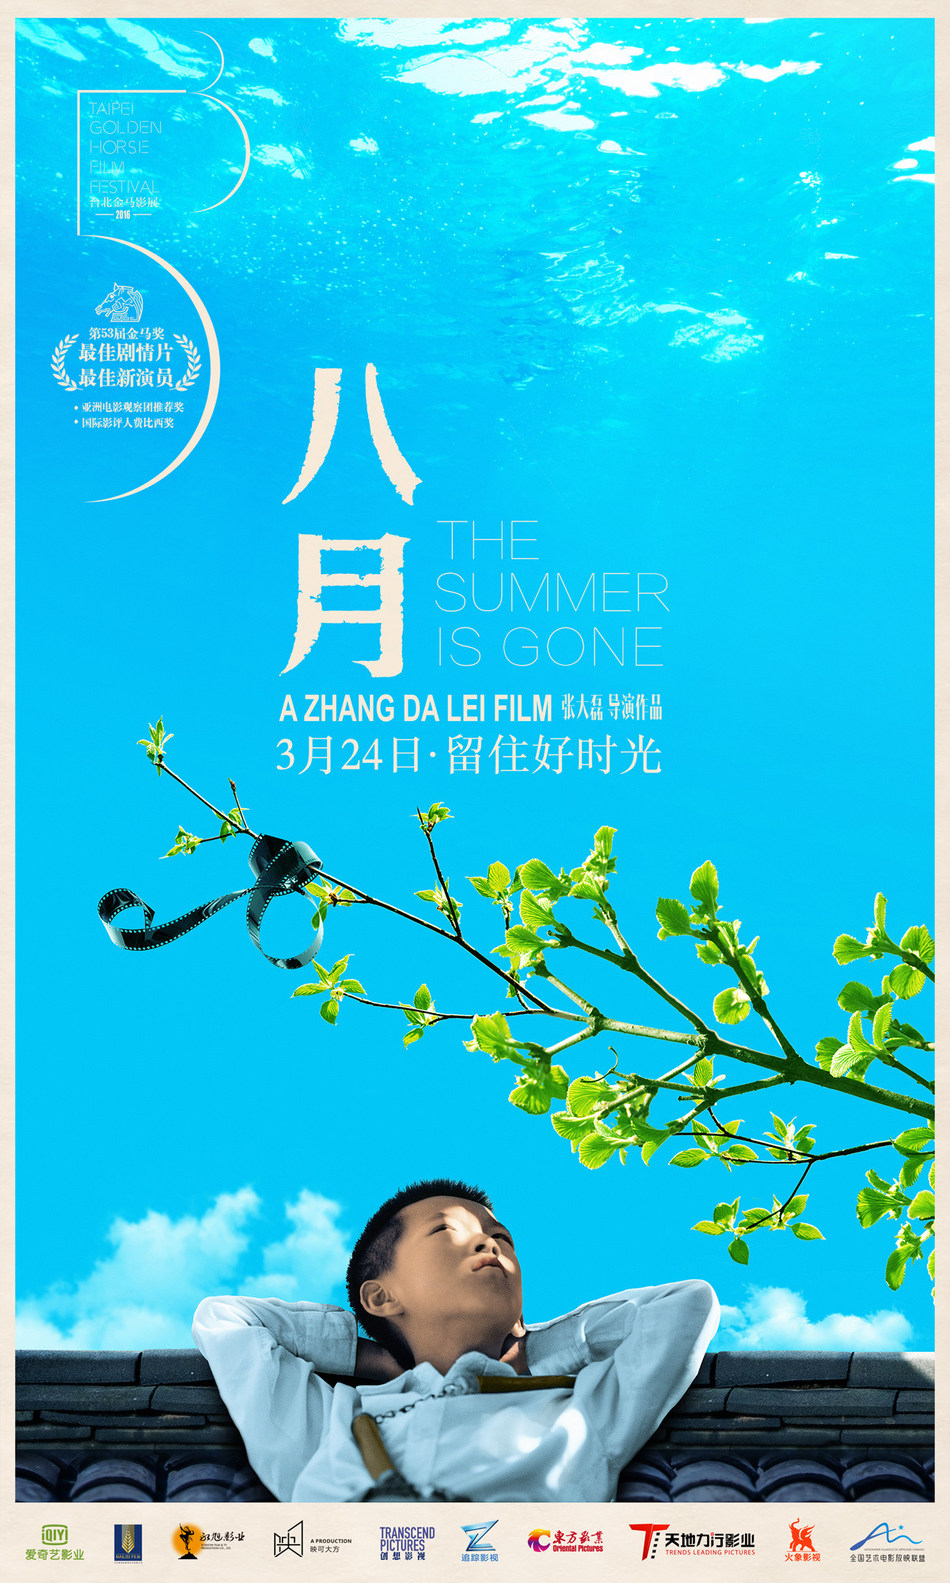 The Summer is gone, an iQIYI film and the winner of The Best Feature Film at 53rd Golden Horse Award in Taiwan